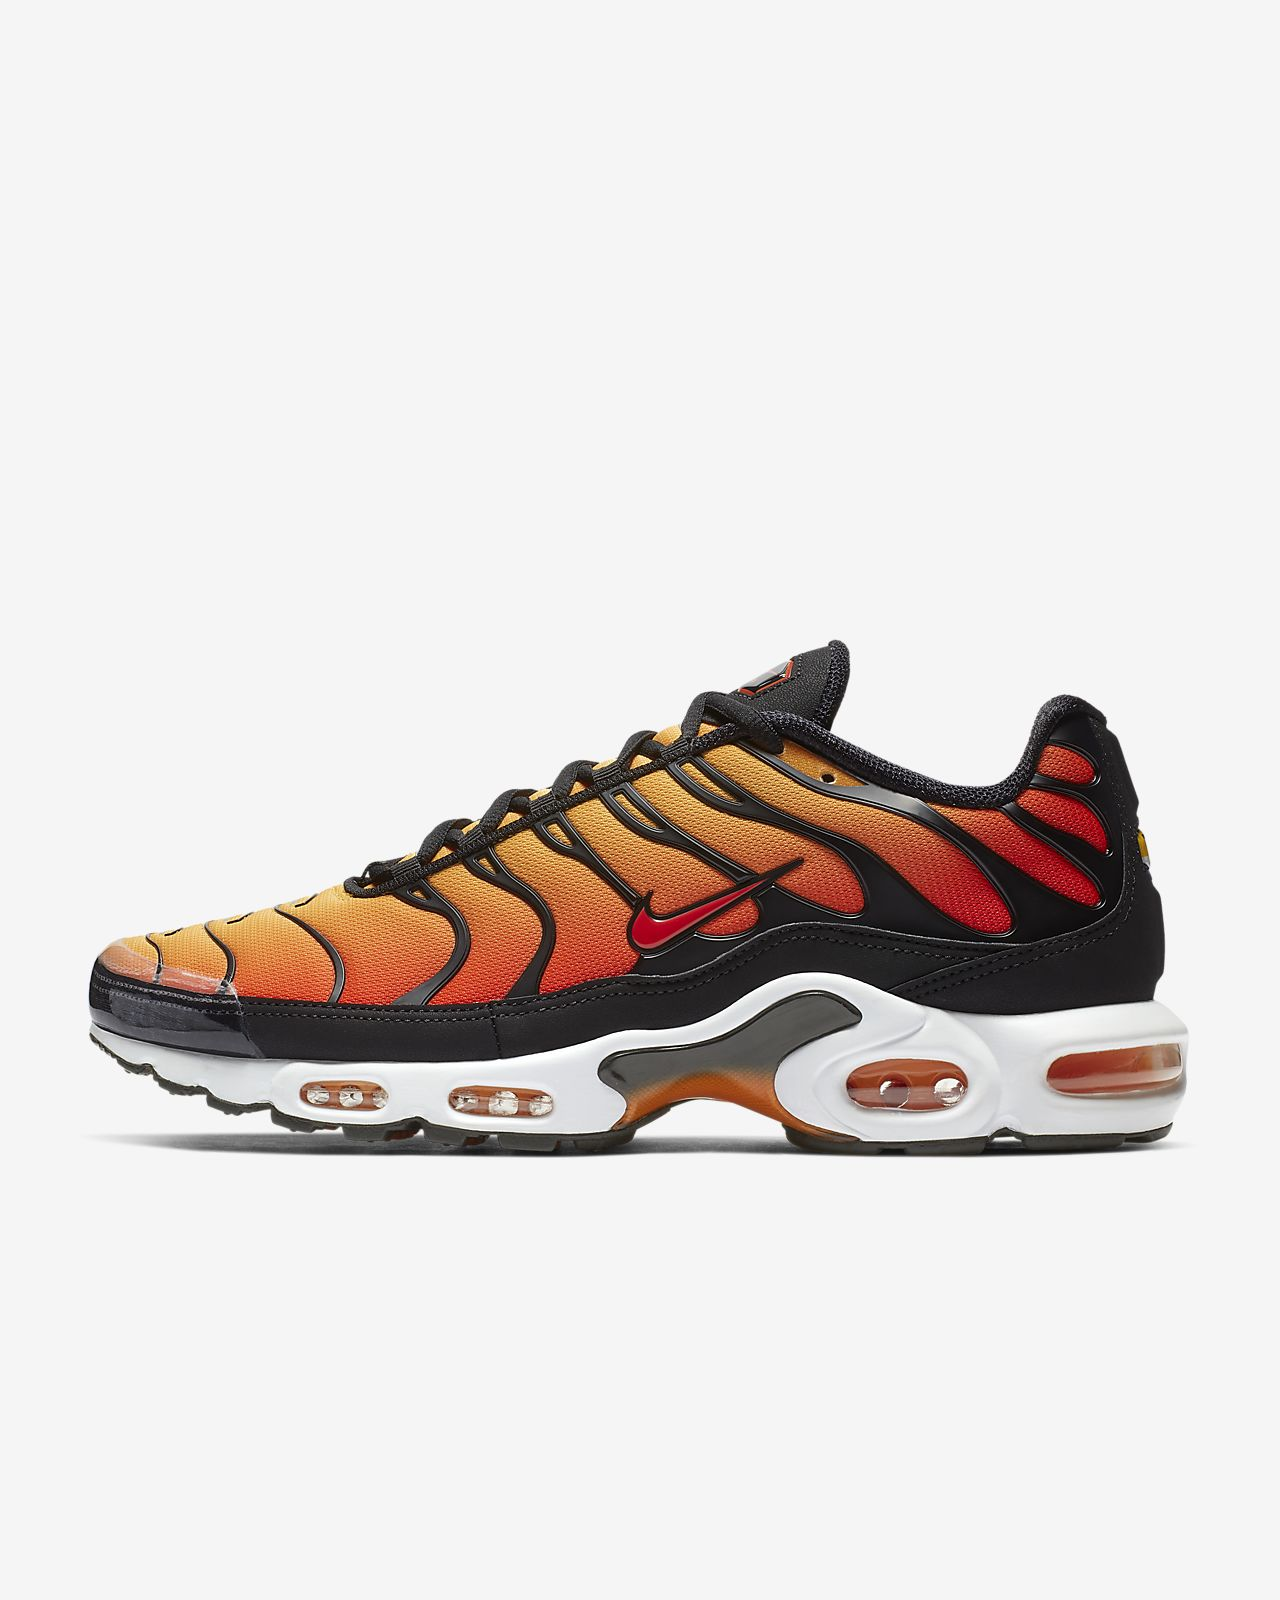 452f3c3b54 Nike Air Max Plus OG Shoe. Nike.com CA